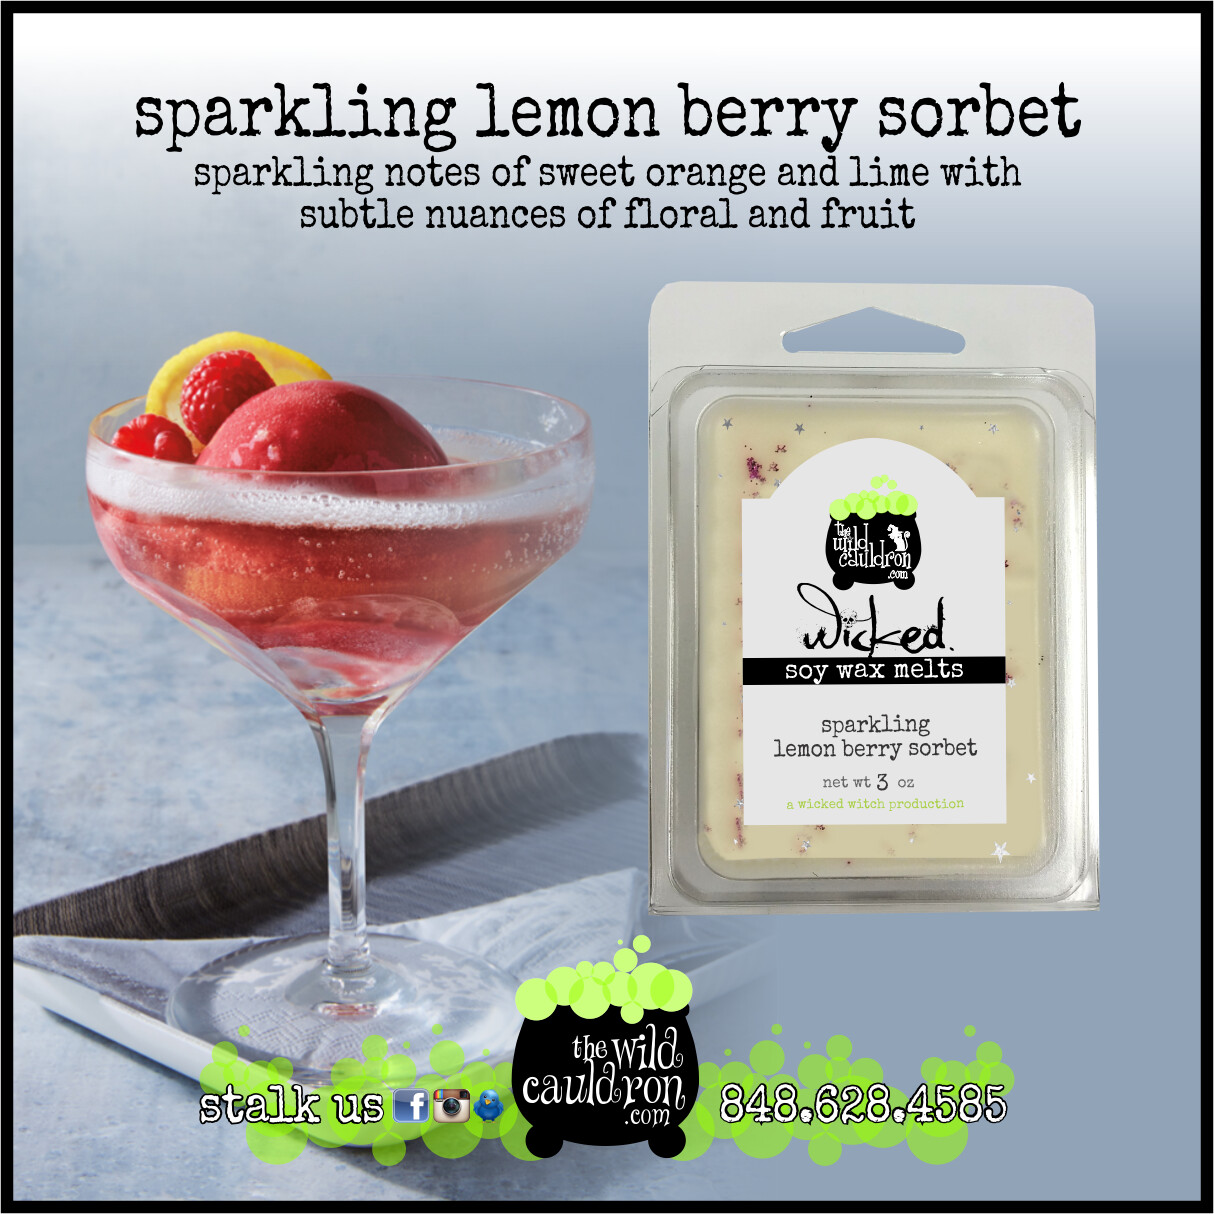 Sparkling Lemonberry Sorbet Wicked Wax Melts